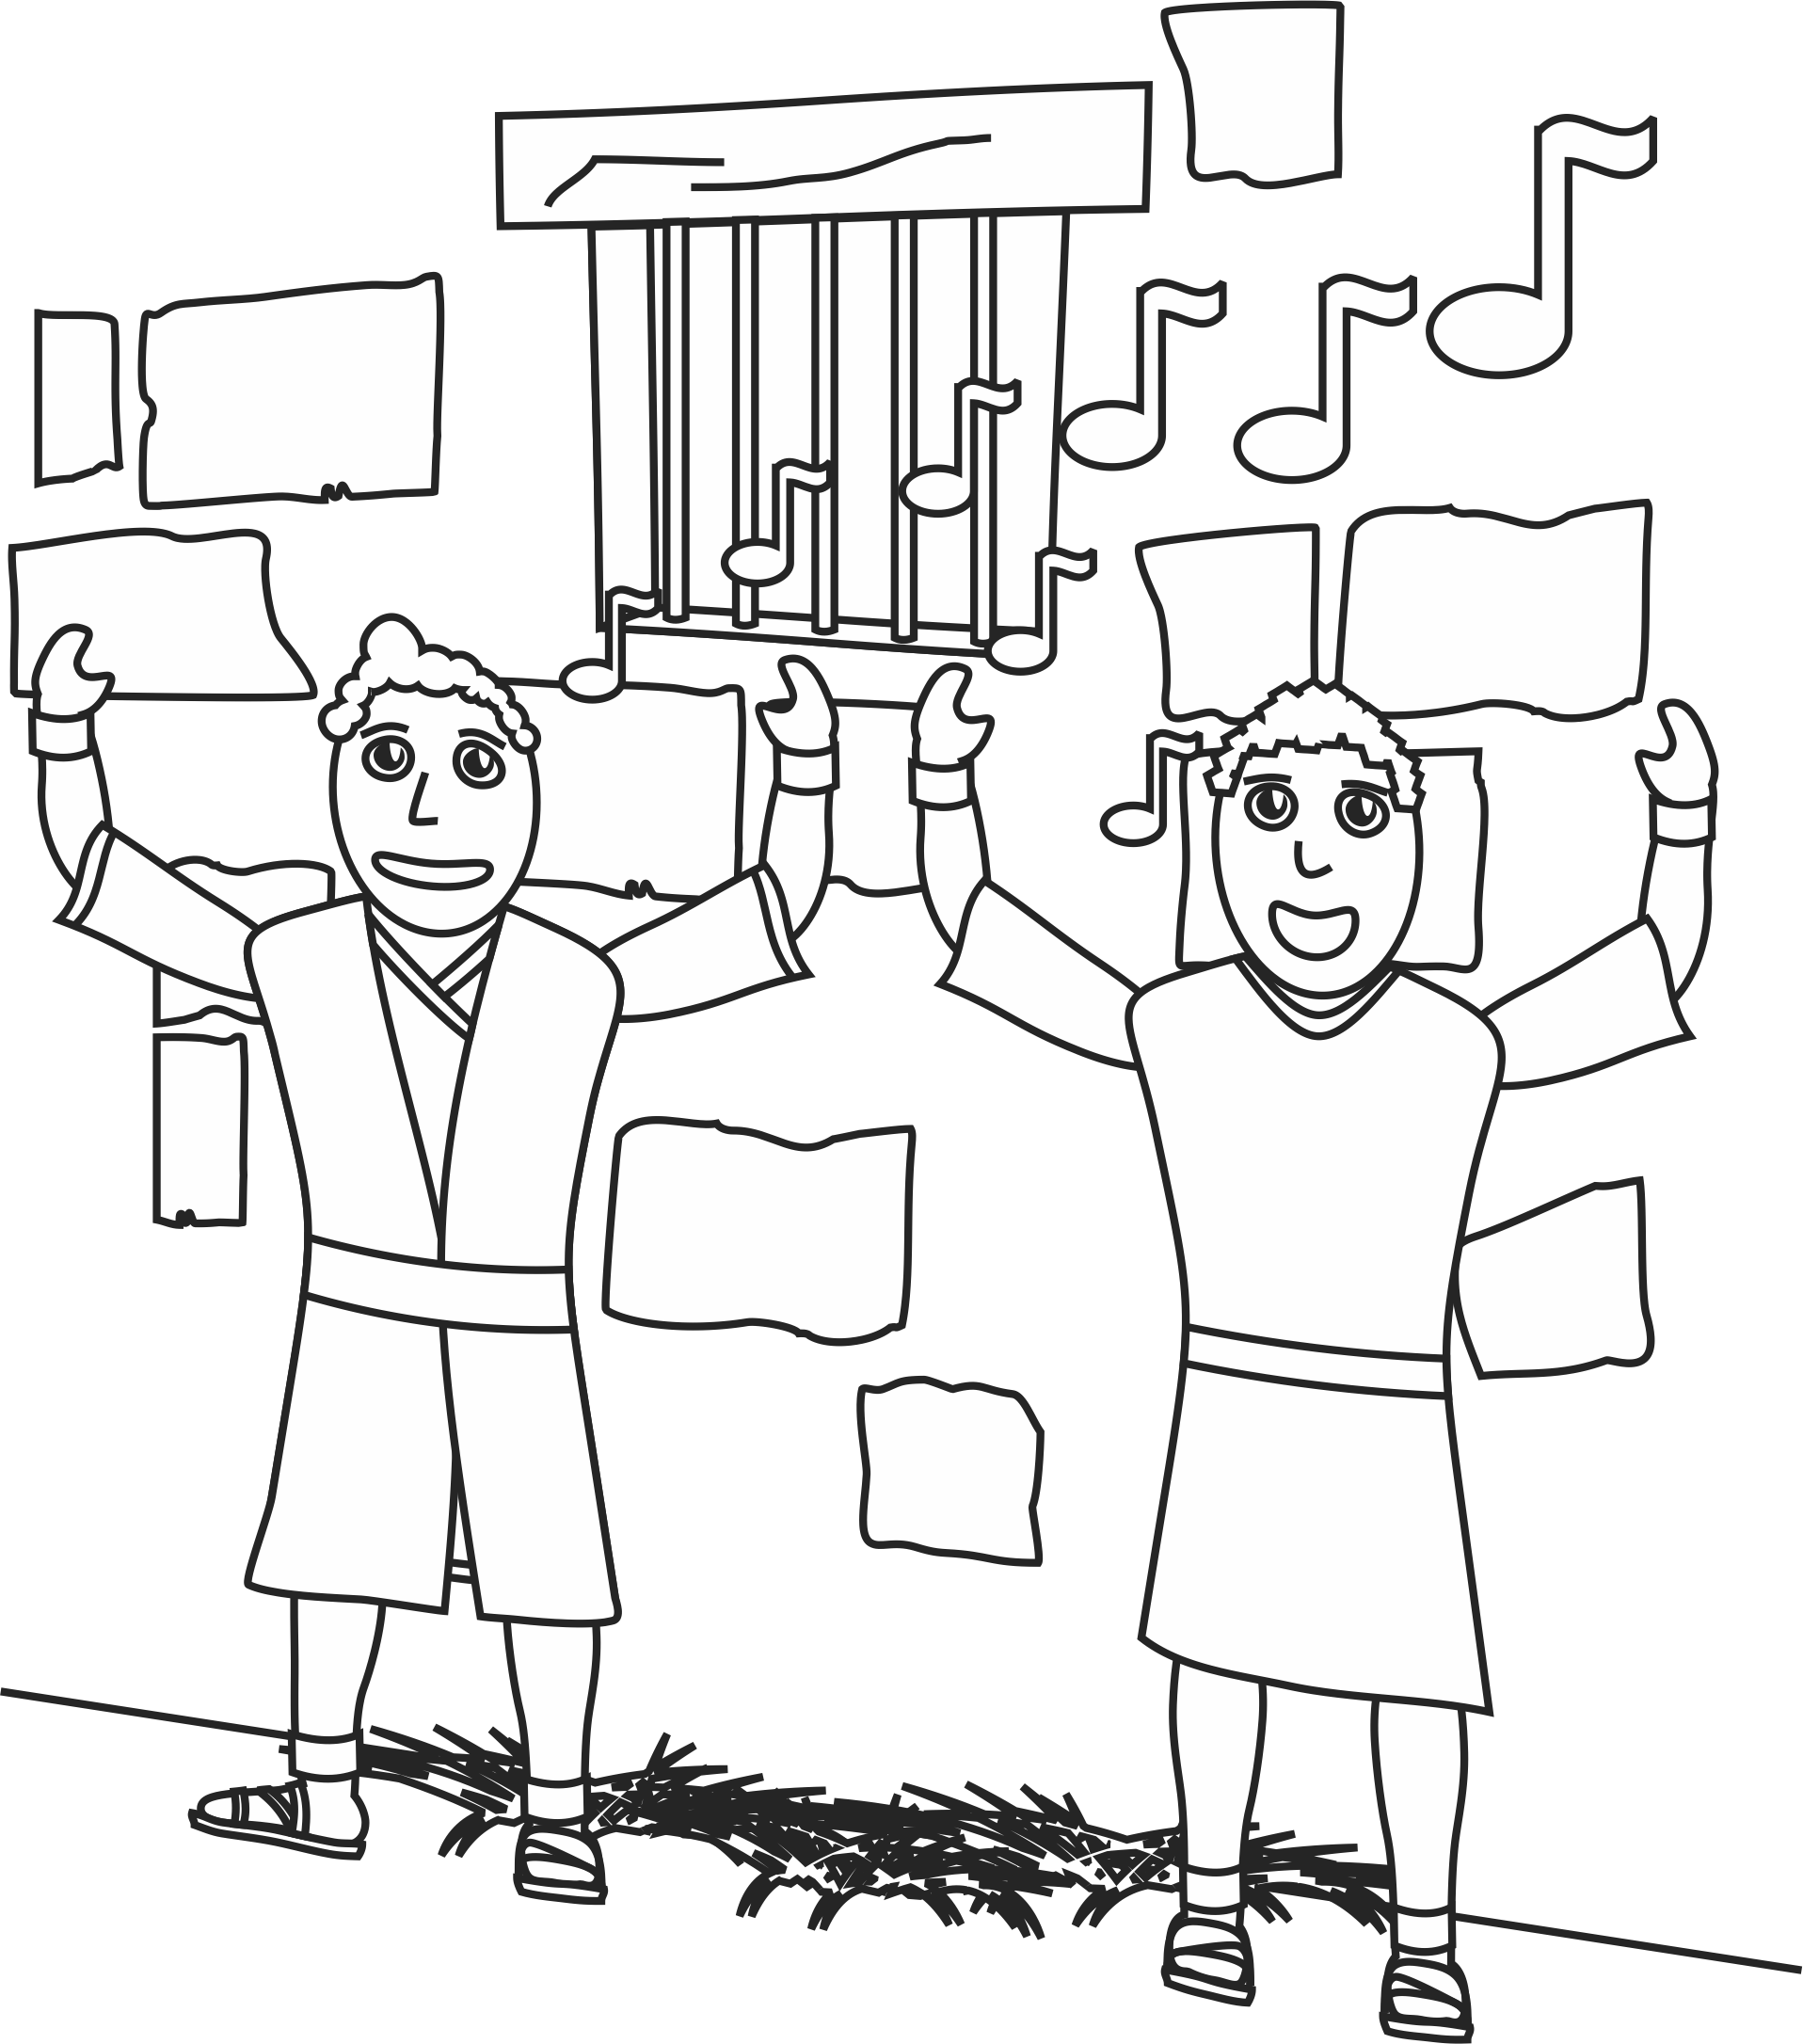 paul and silas coloring page 32 paul and silas in jail coloring page in 2020 with coloring silas and page paul